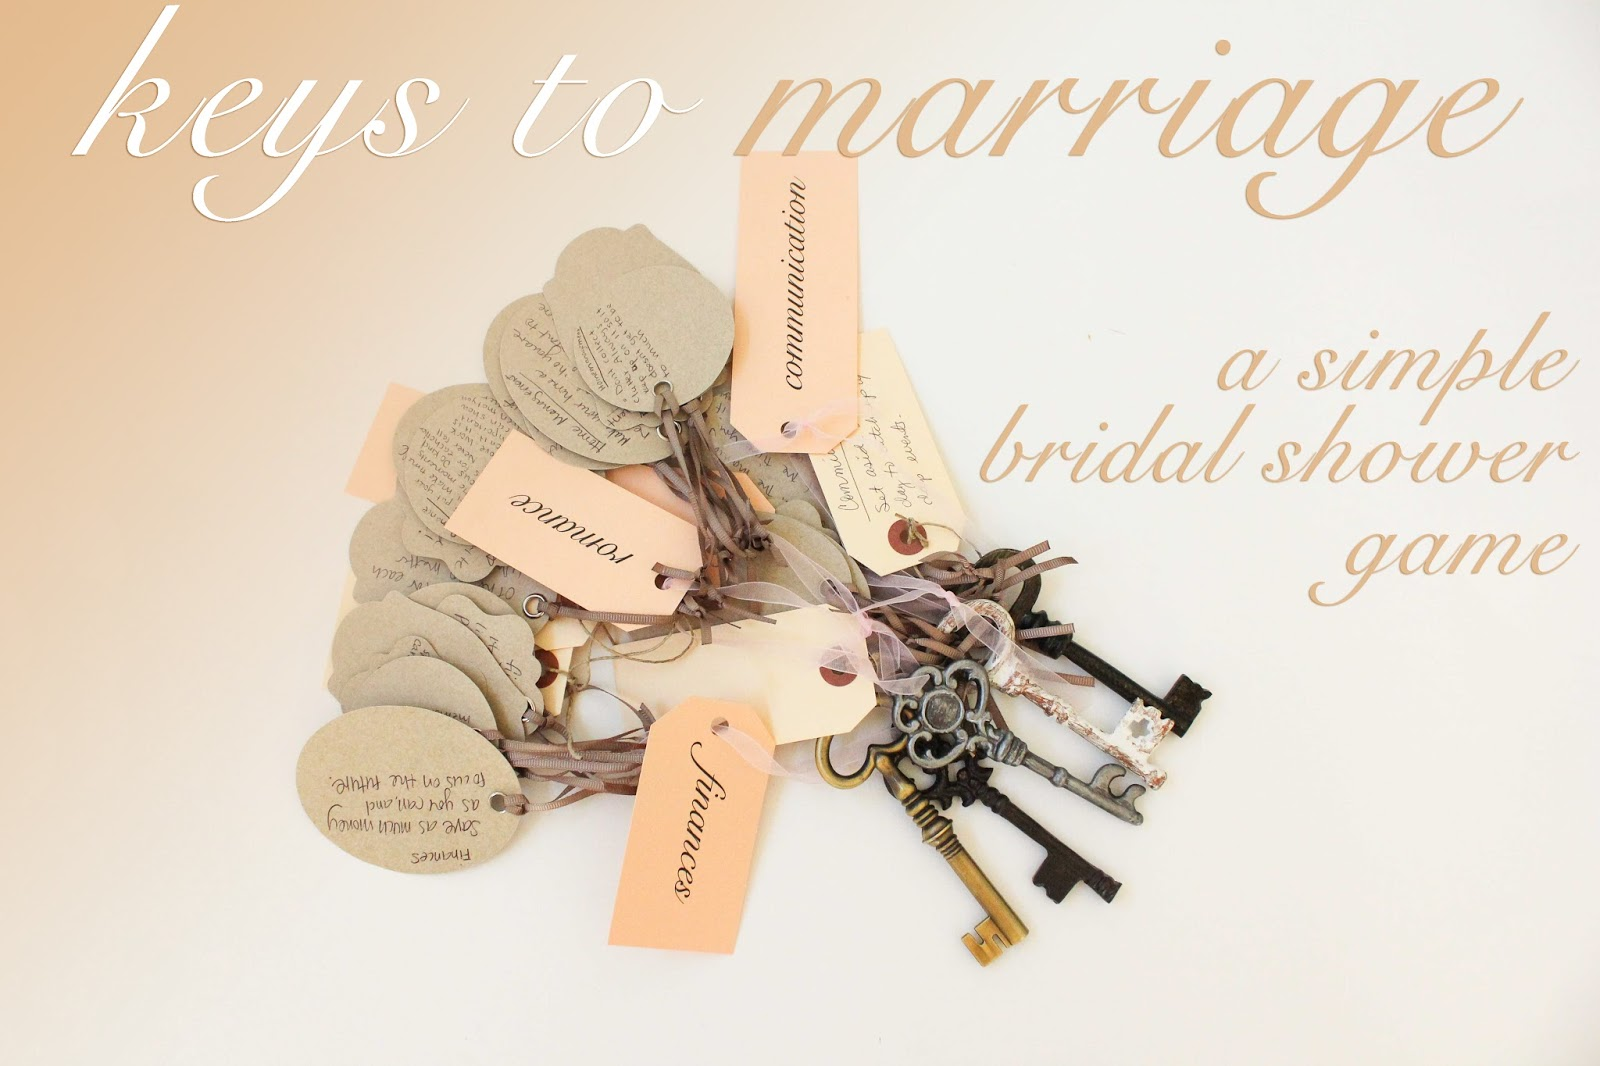 keys to marriage a simple bridal shower game